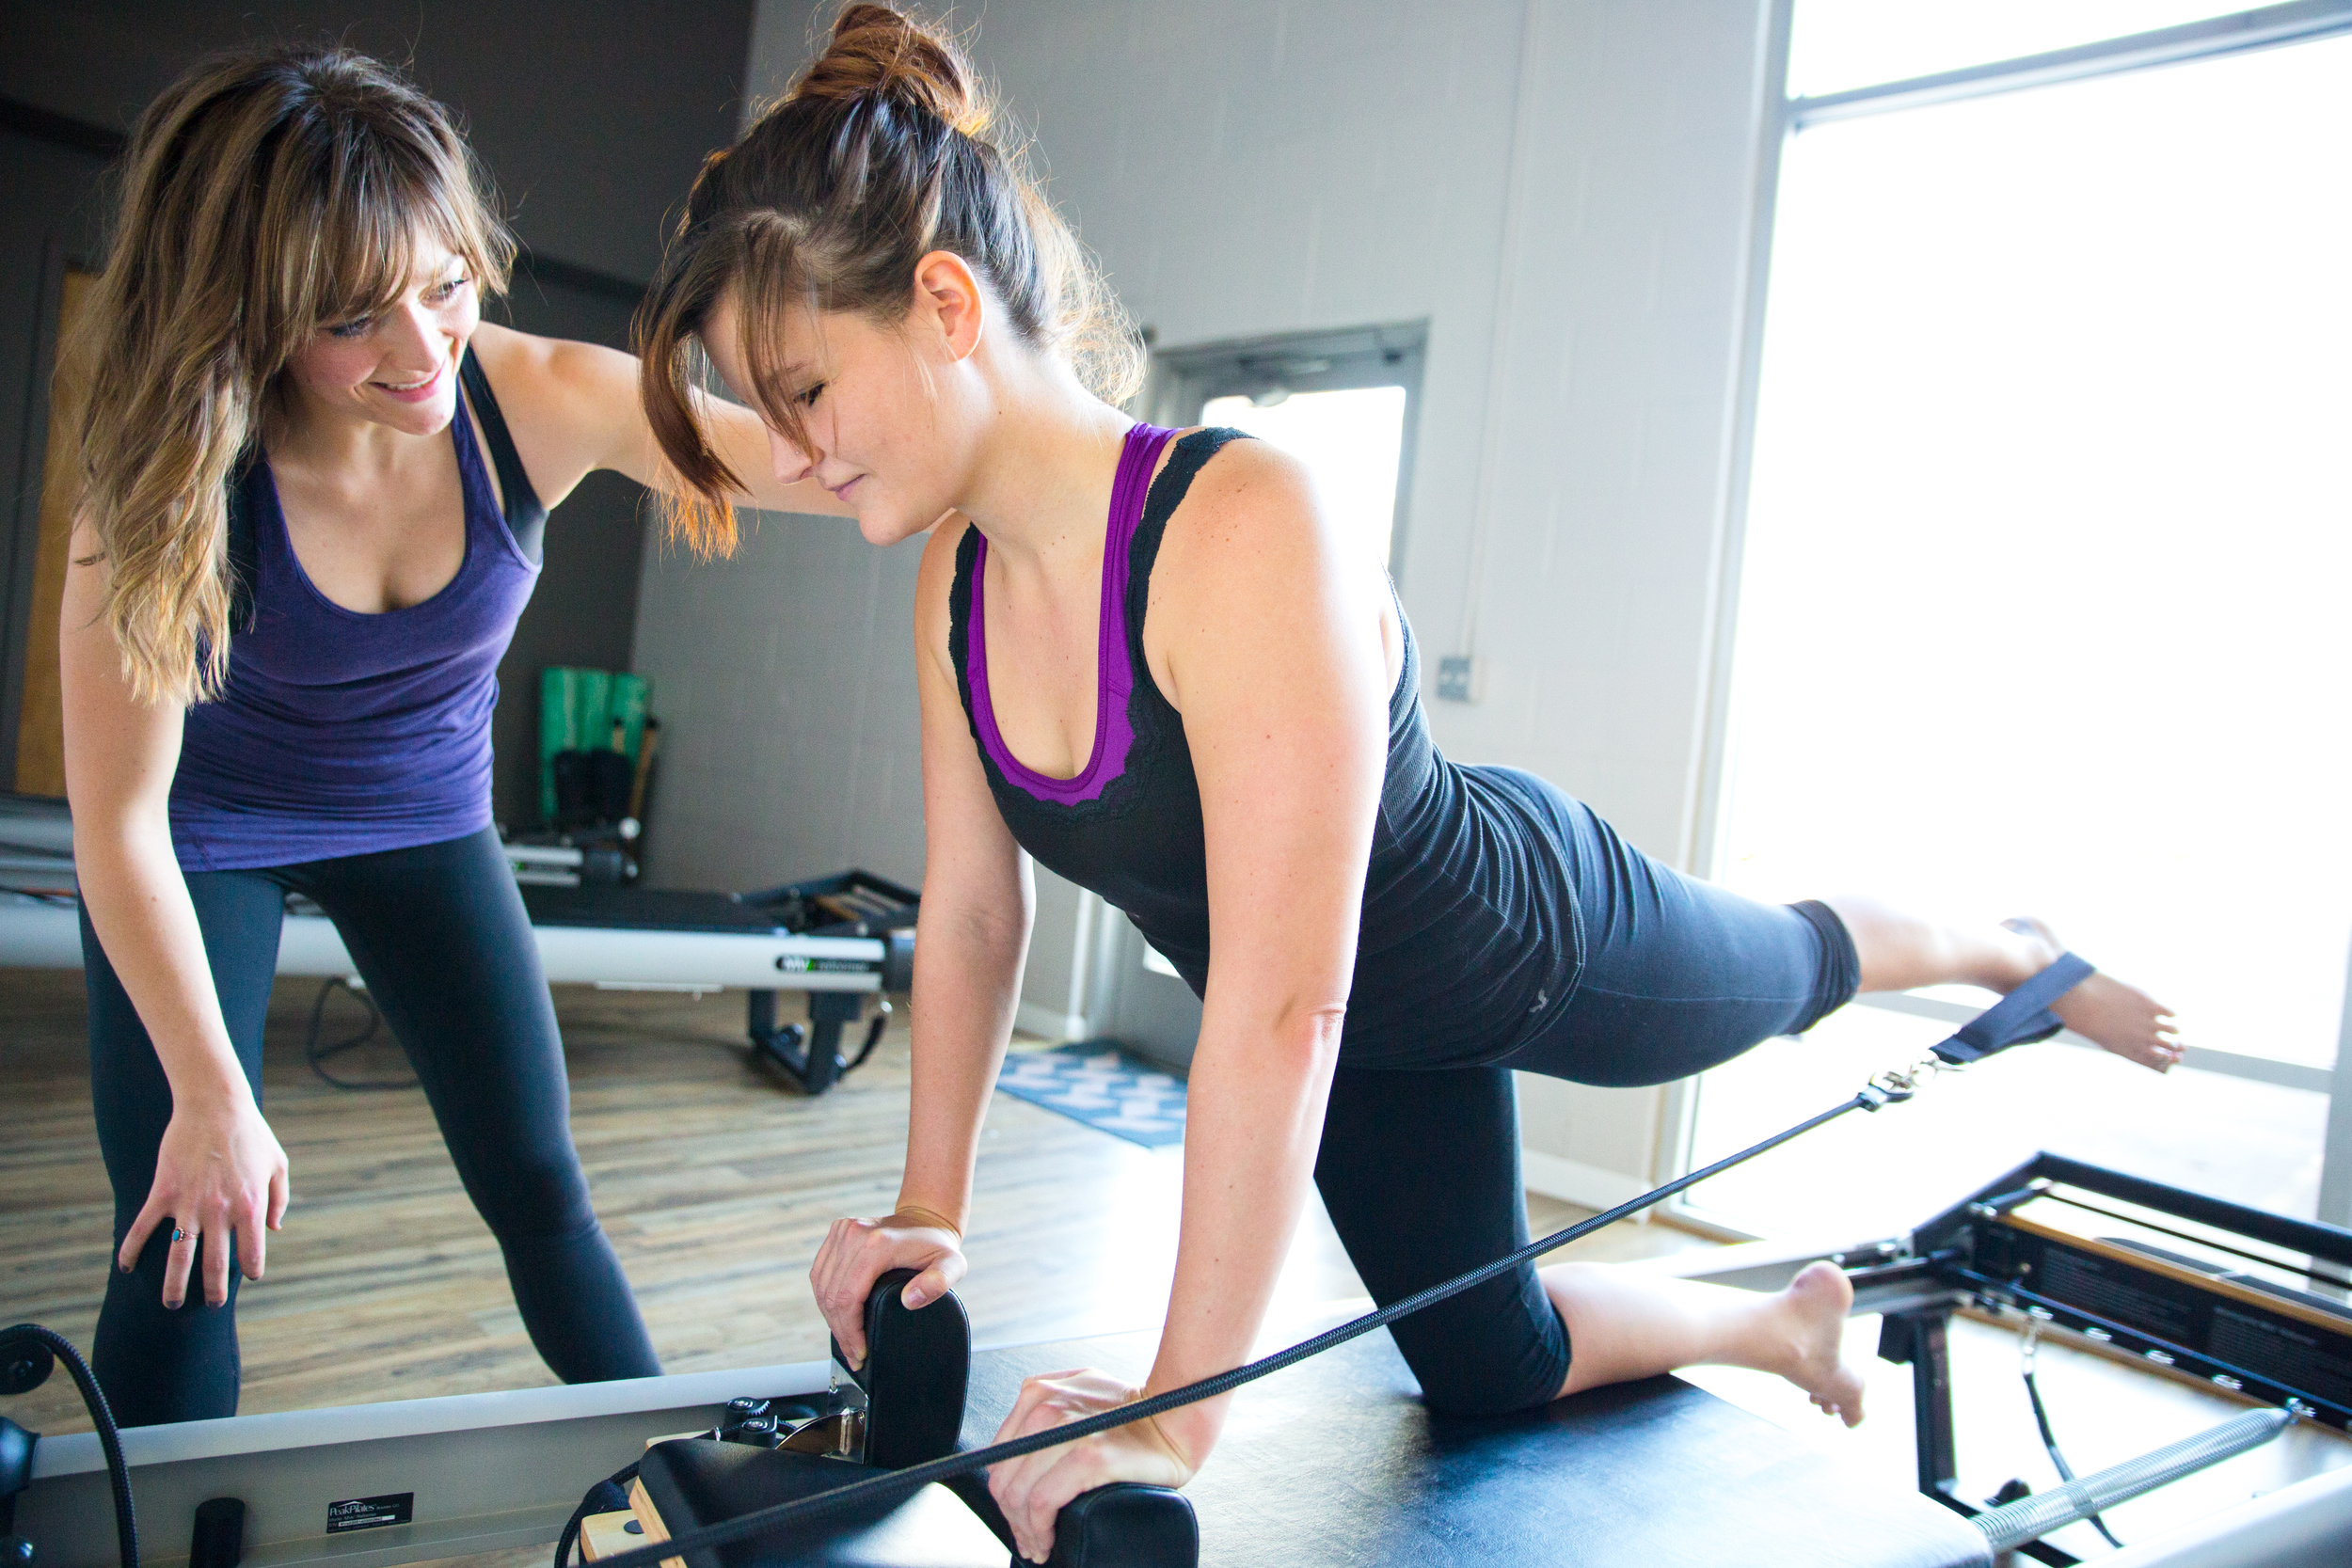 INTRO TO REFORMER PILATES    PERFECT FOR THOSE WHO ARE NEW TO THE REFORMER AND WUNDA CHAIR OR THOSE JUST NEEDING A REFRESHER COURSE. LEARN THE BASIC PRINCIPLES AND OBJECTIVES OF THE PILATES METHOD. RECOMMENDED FOR ALL NEW CLIENTS.